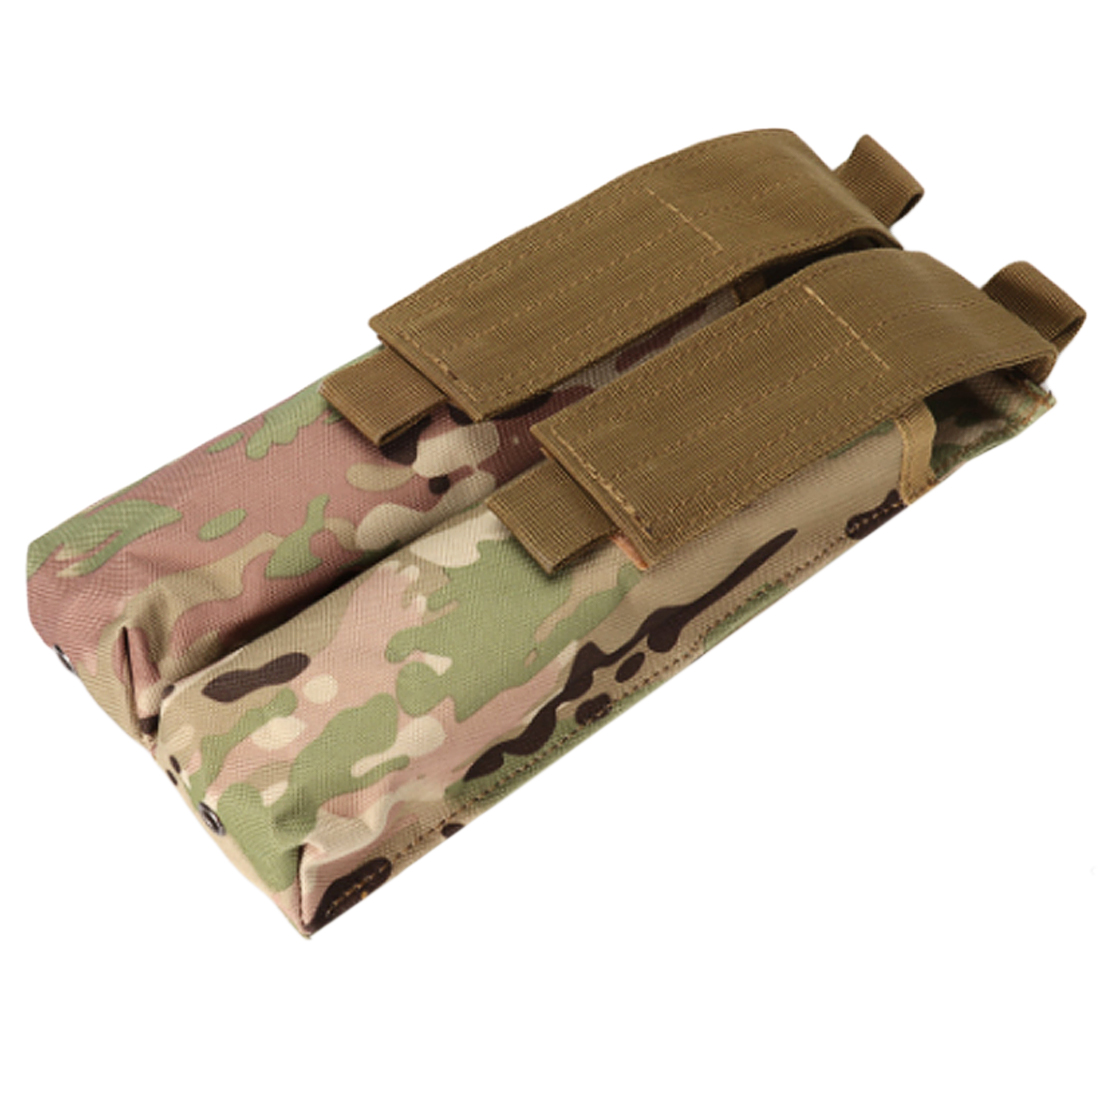 Image 2 - Molle Magazine Pouch for P90 Magazine and Worker short darts Magazine   Camouflage-in Paintball Accessories from Sports & Entertainment